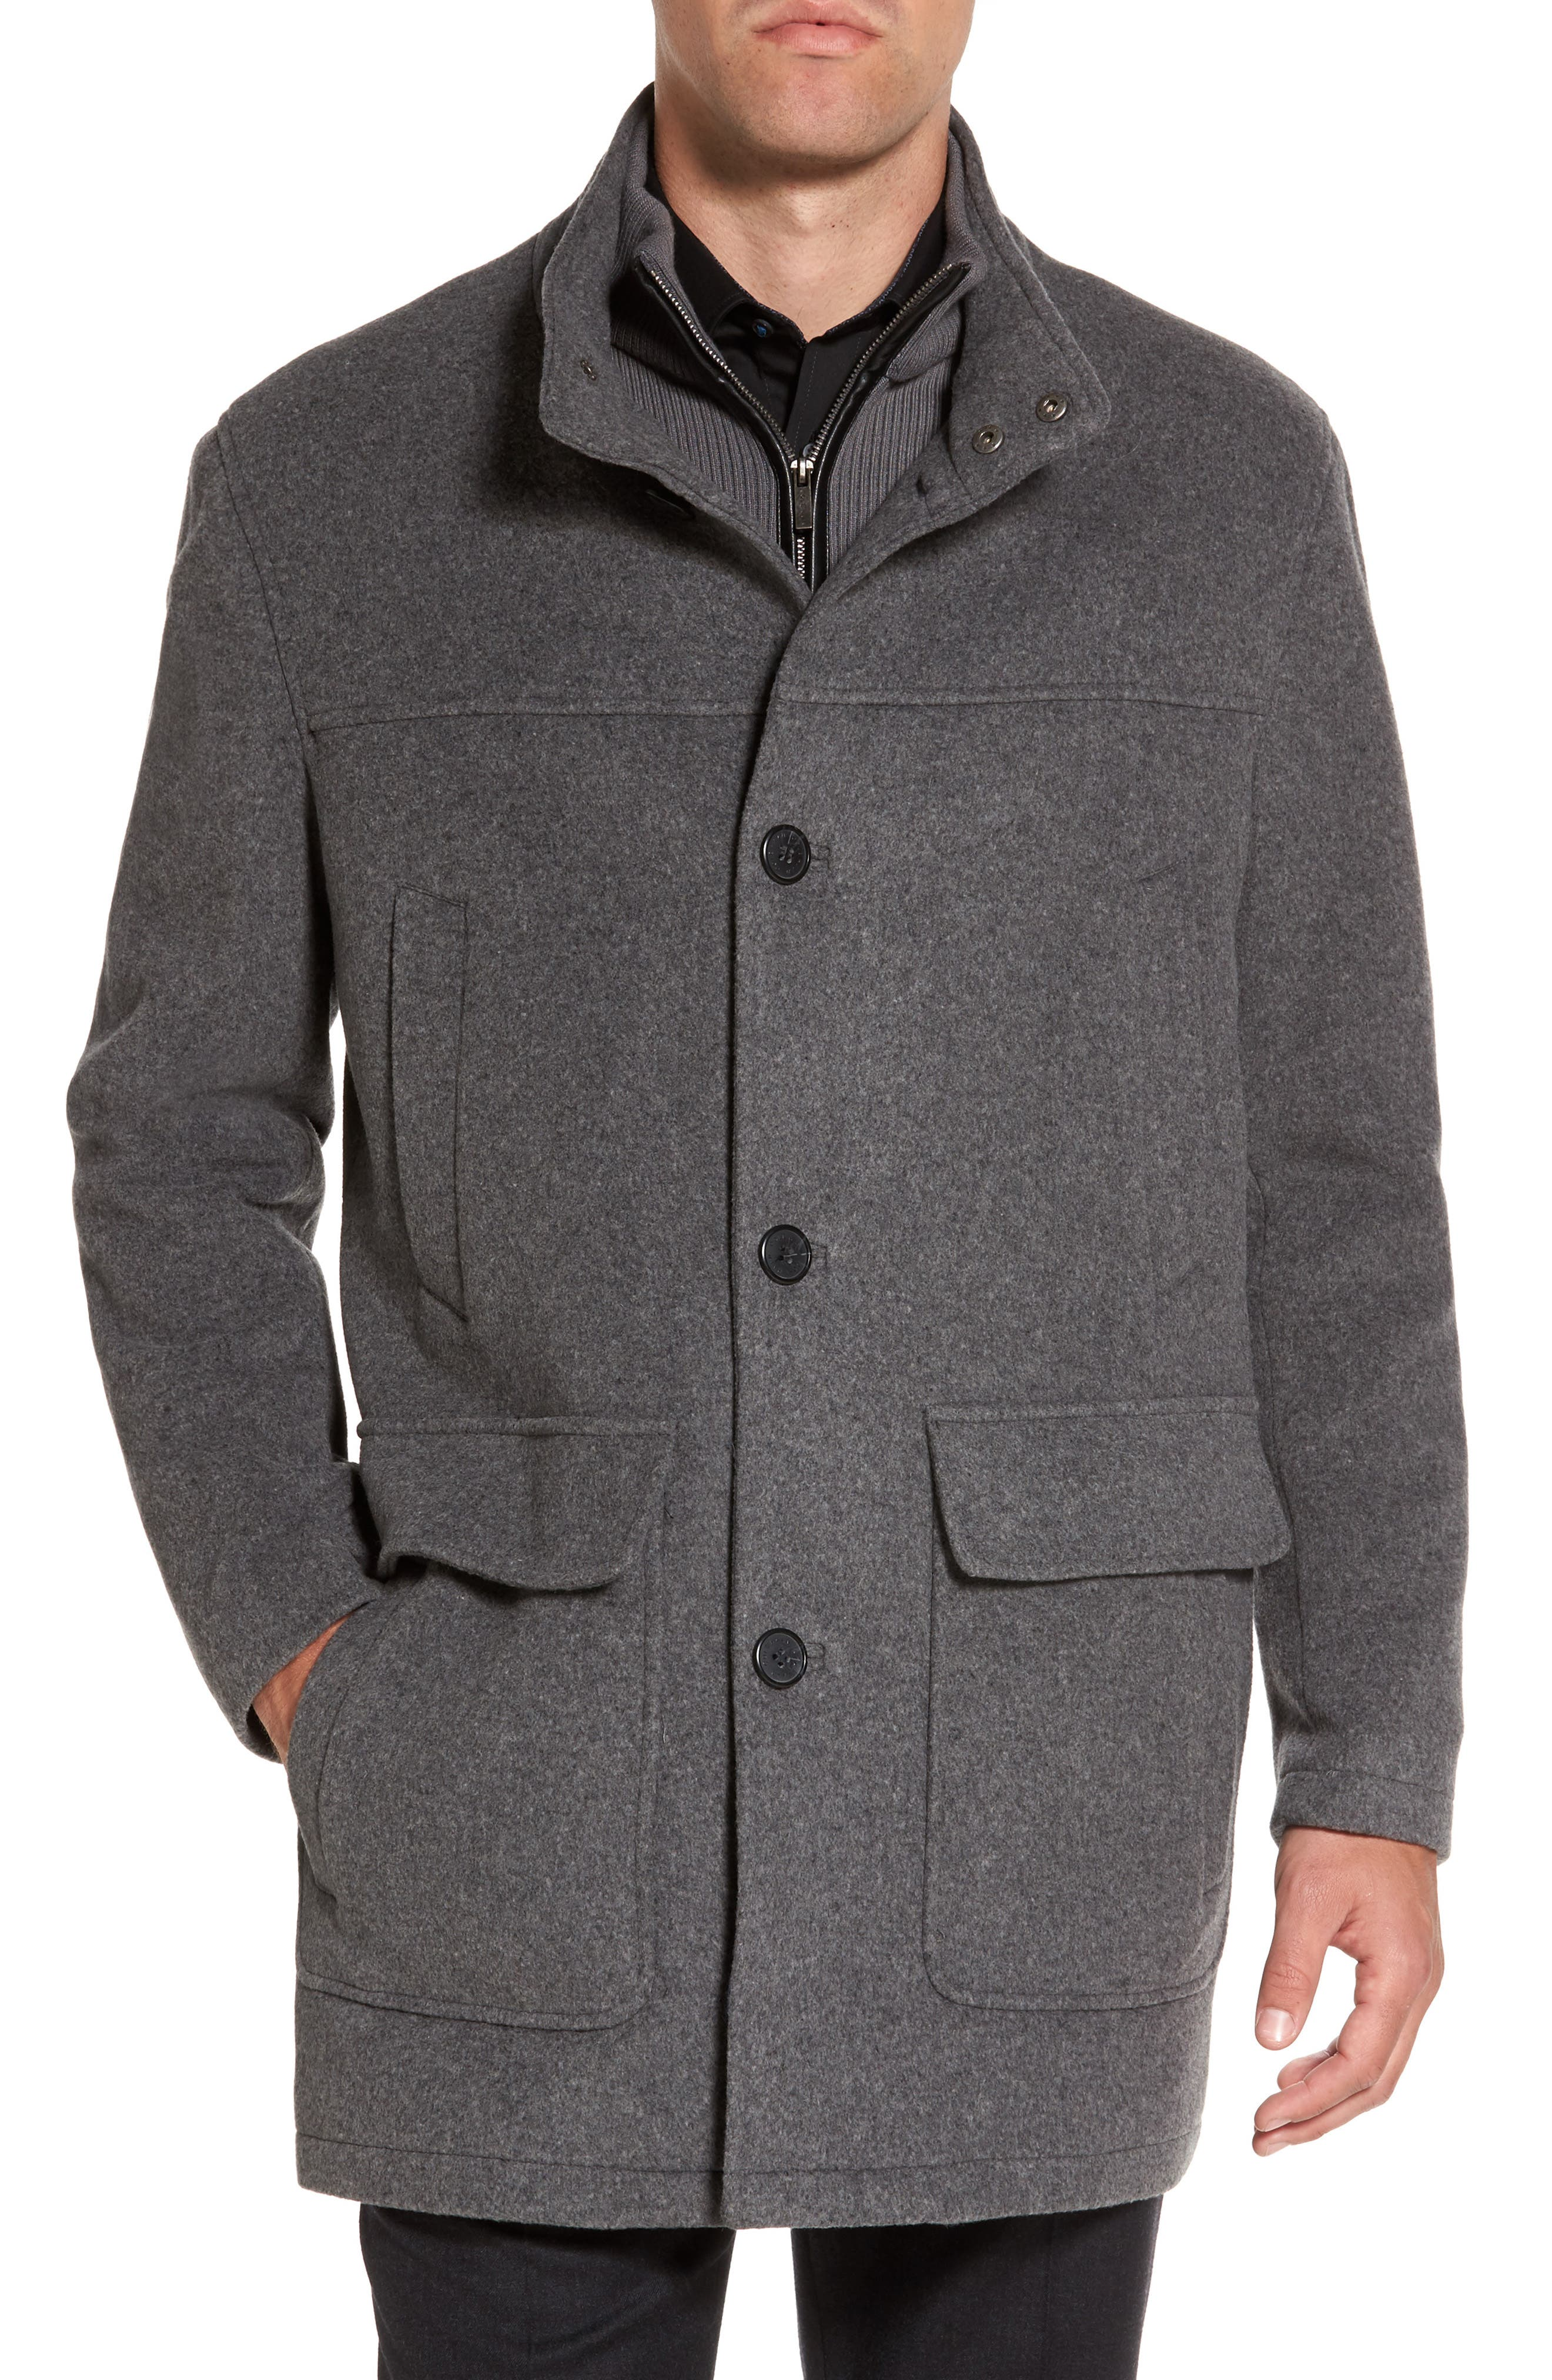 Main Image - Cole Haan Wool Blend Topcoat with Inset Bib